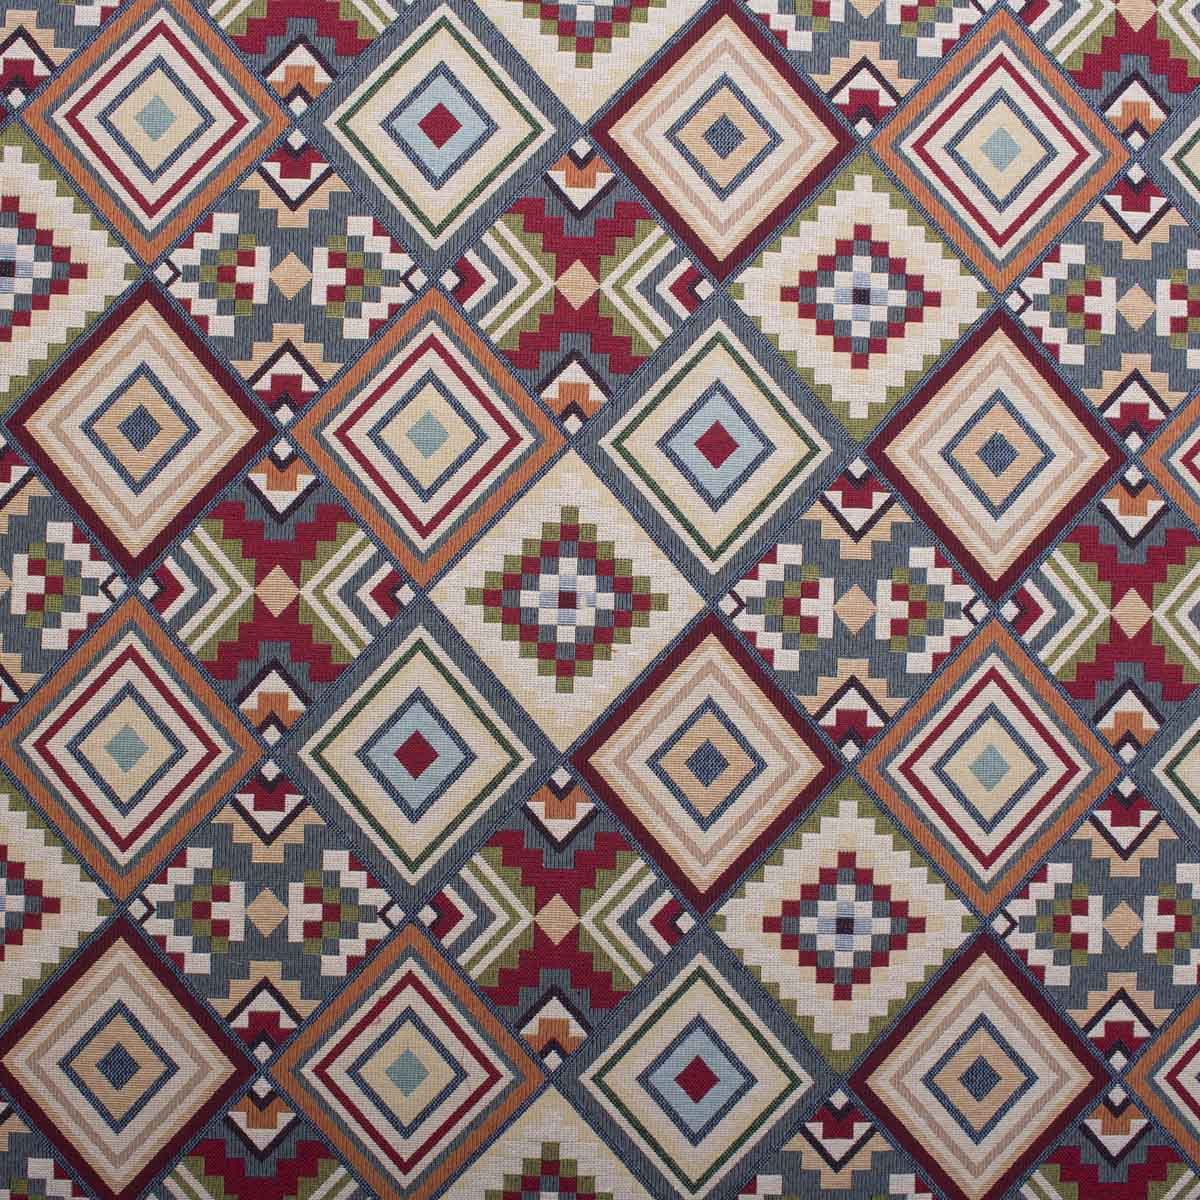 World of Aztec Bright Tapestry Geometric Pattern Upholstery ...